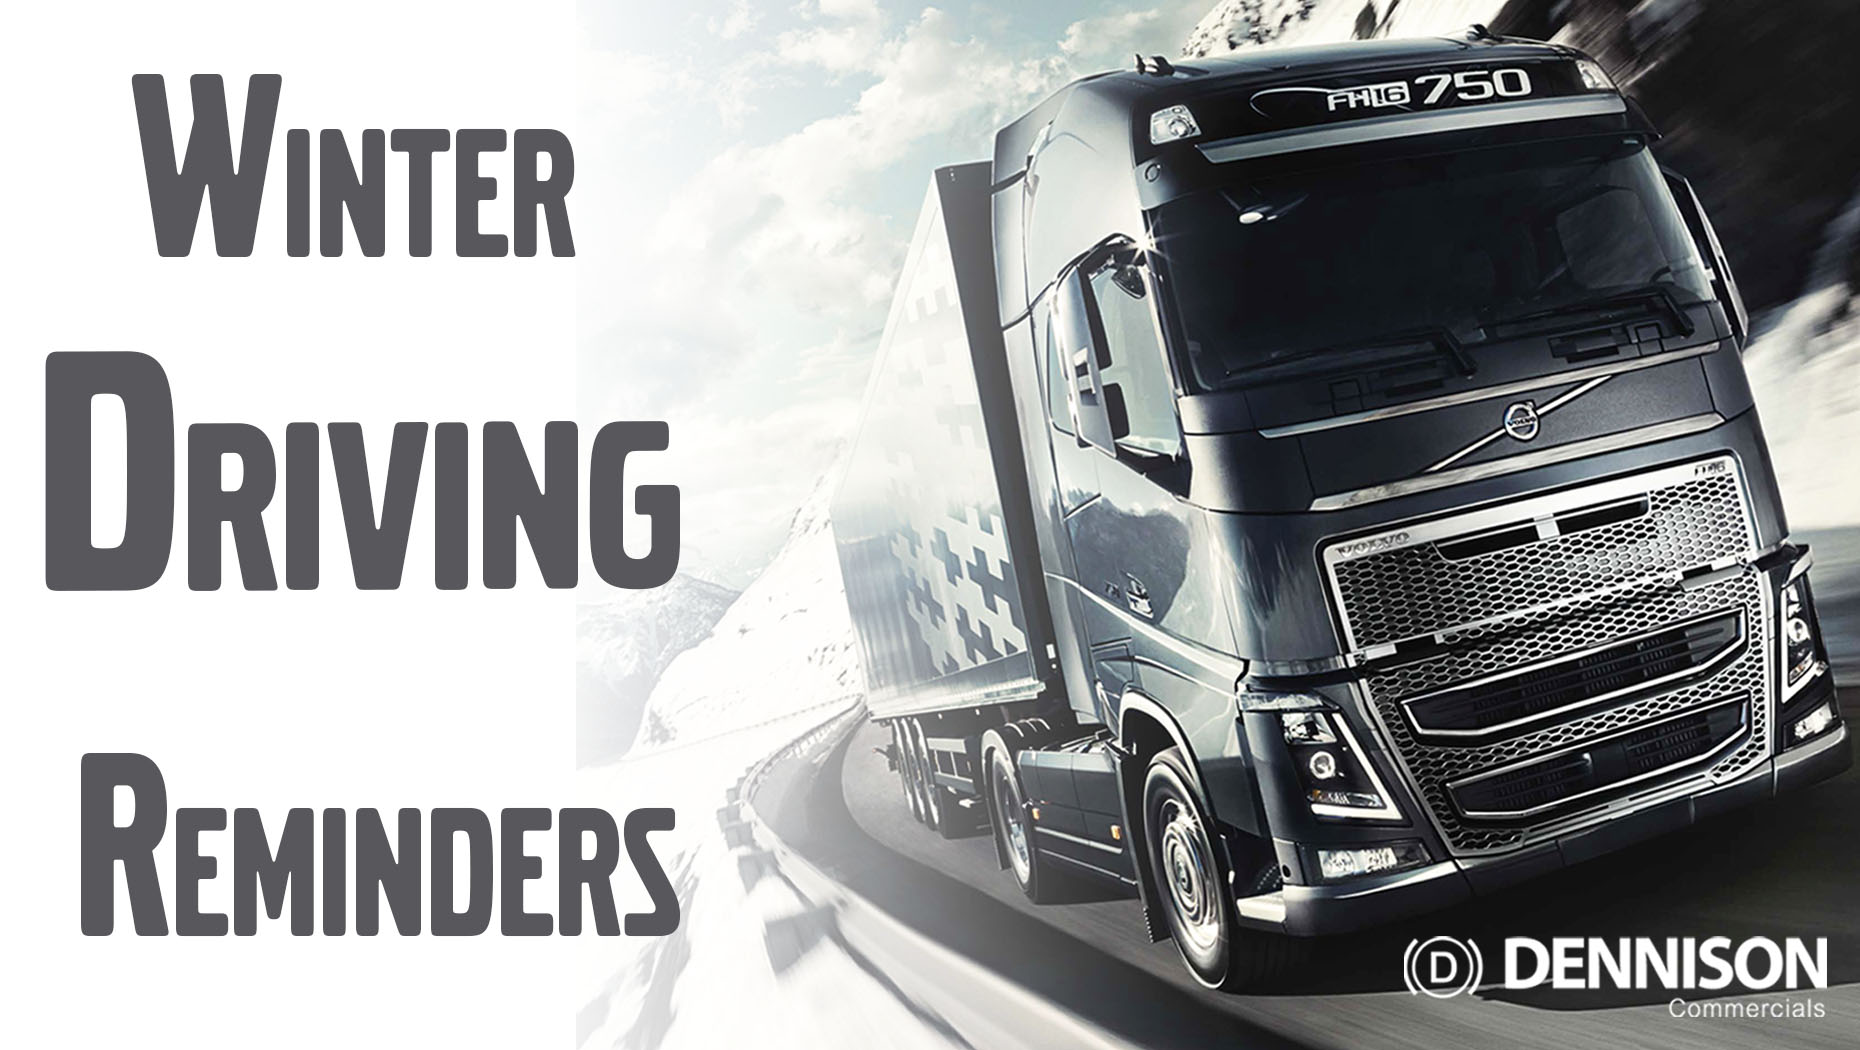 HGV Driving Reminders for Winter Roads